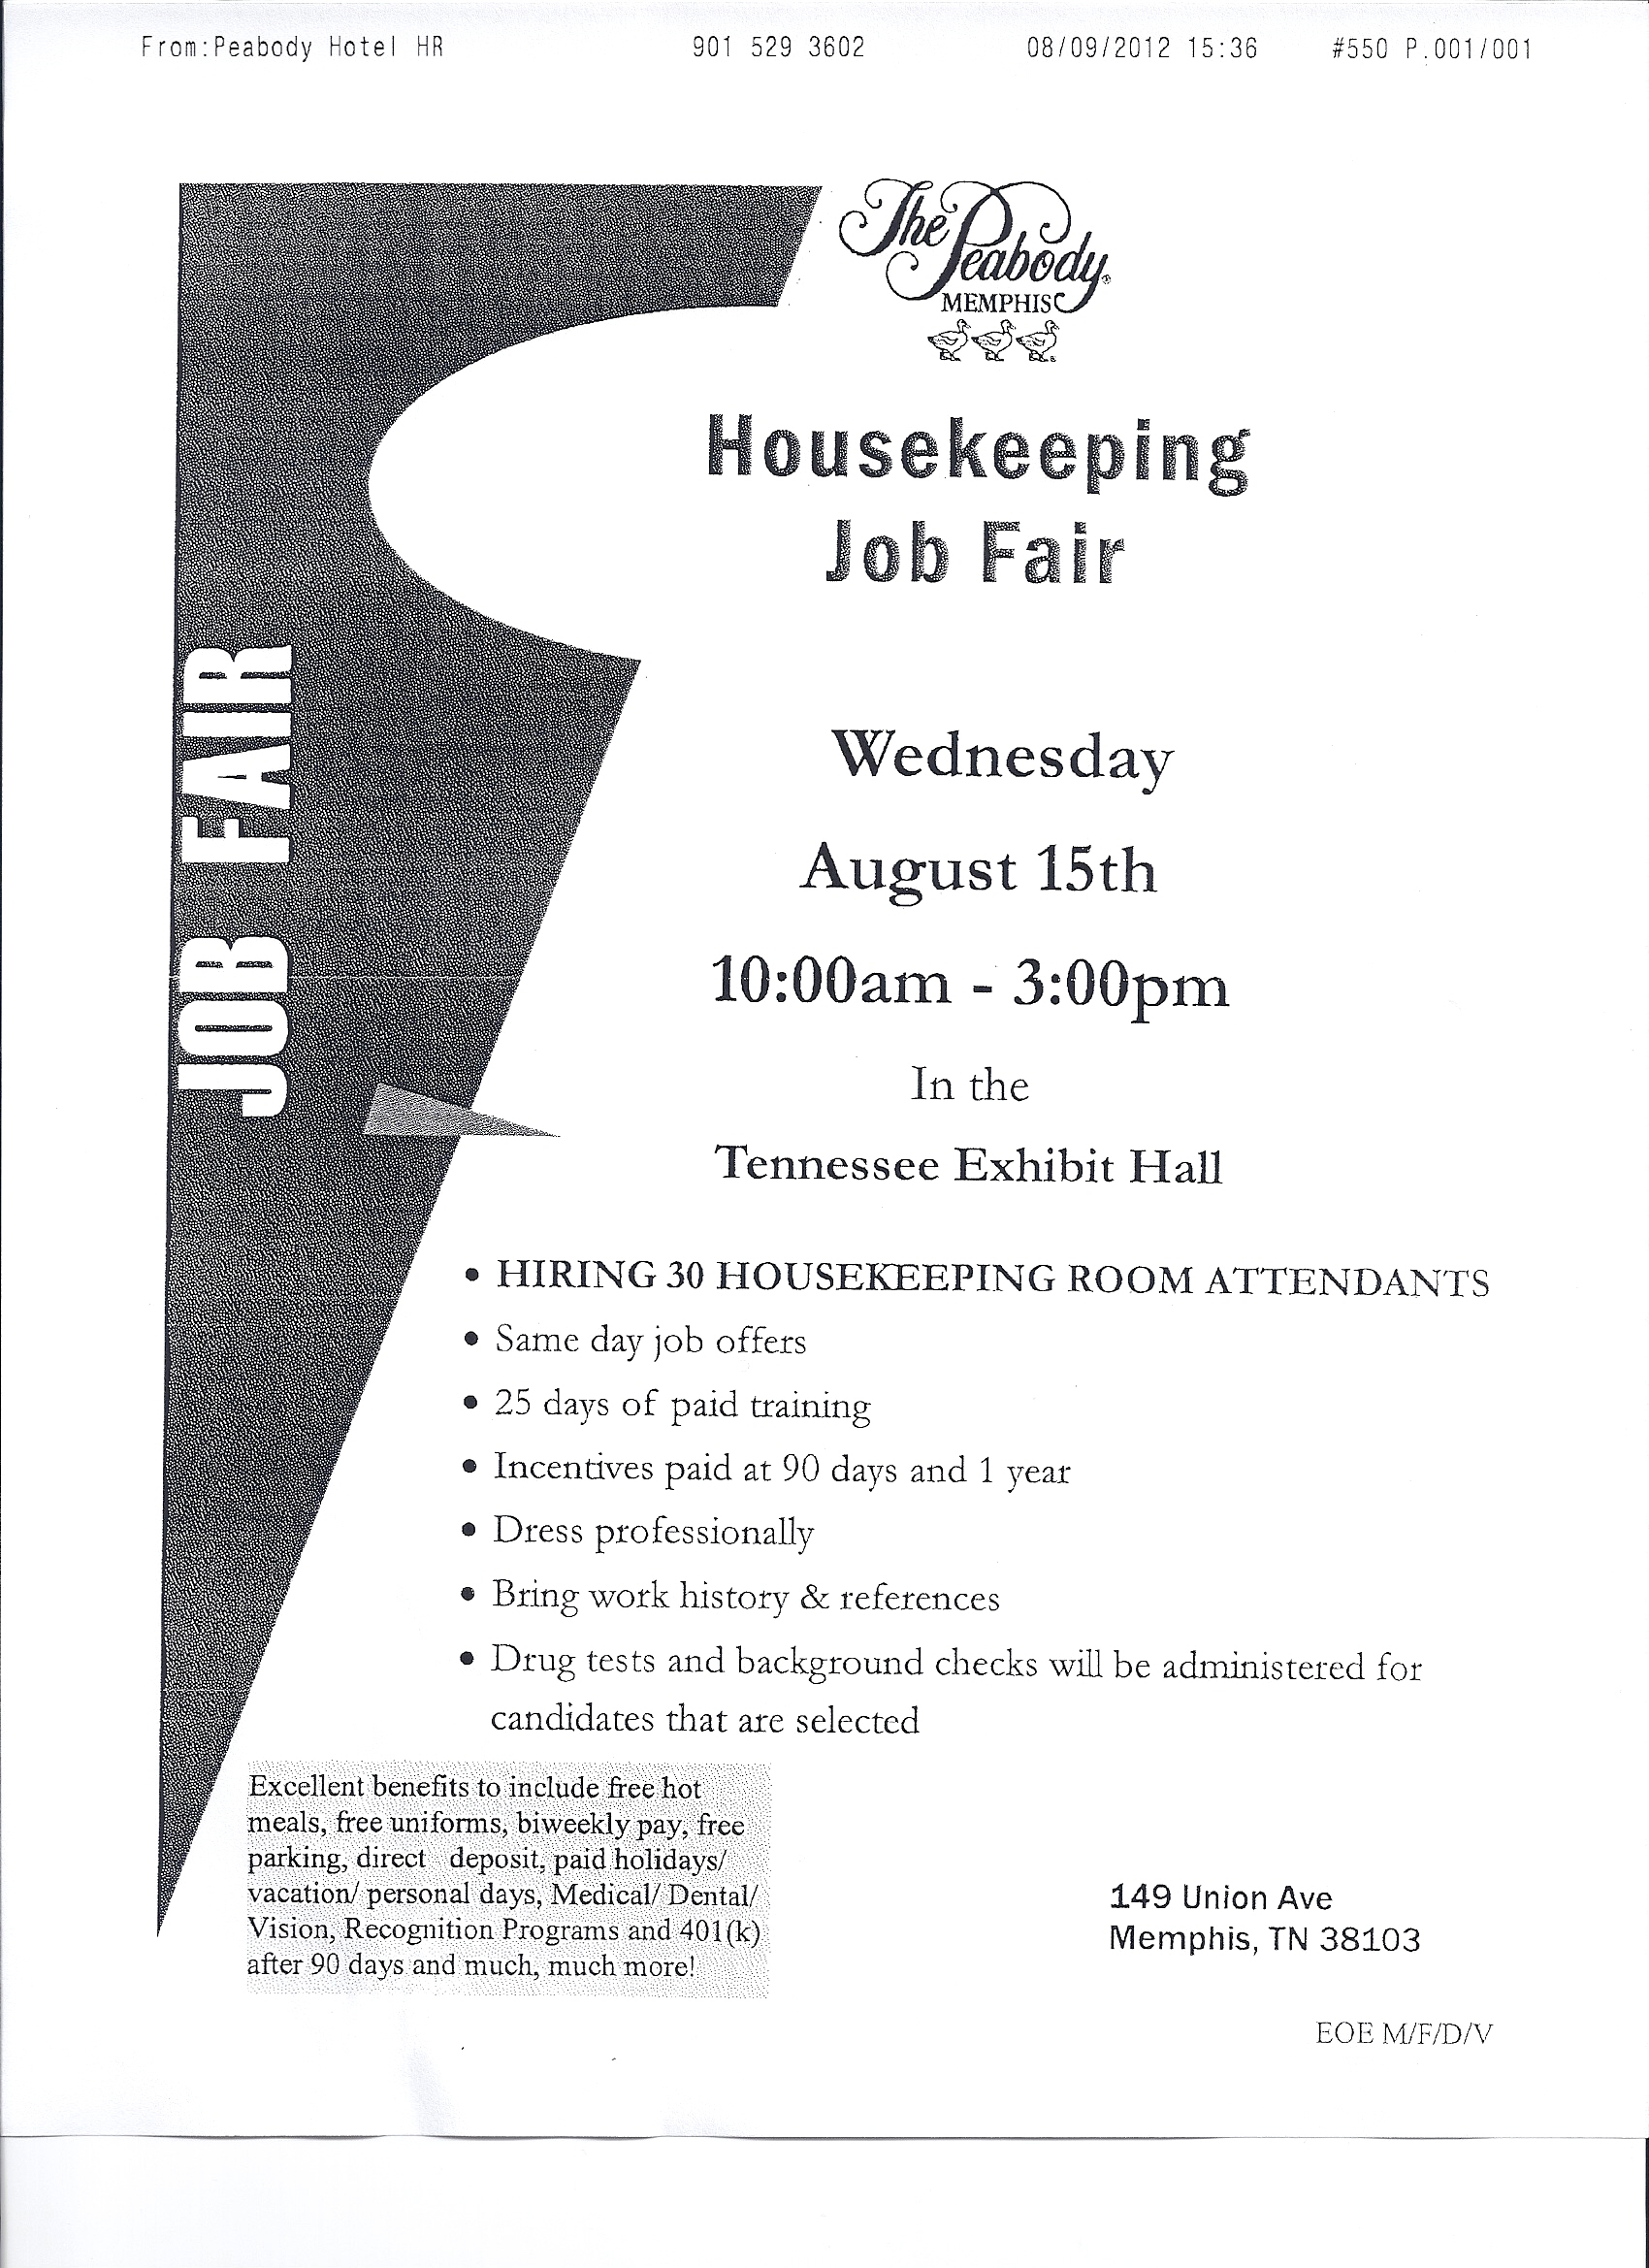 Housekeeping Job Amp Career News From The Memphis Public Library